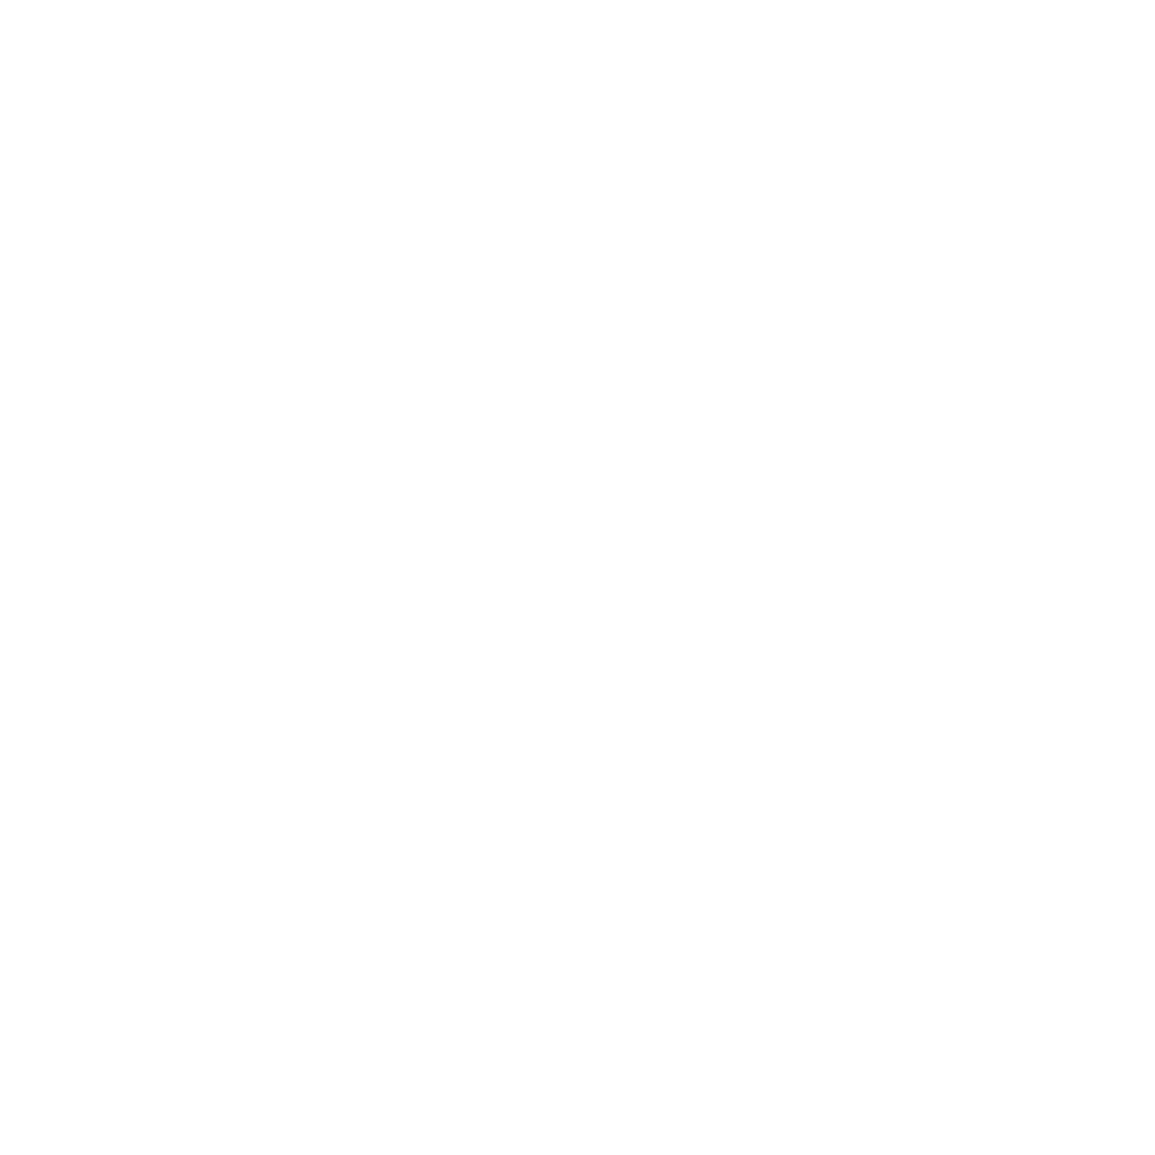 Slap Happy Ultd Emporium Logo